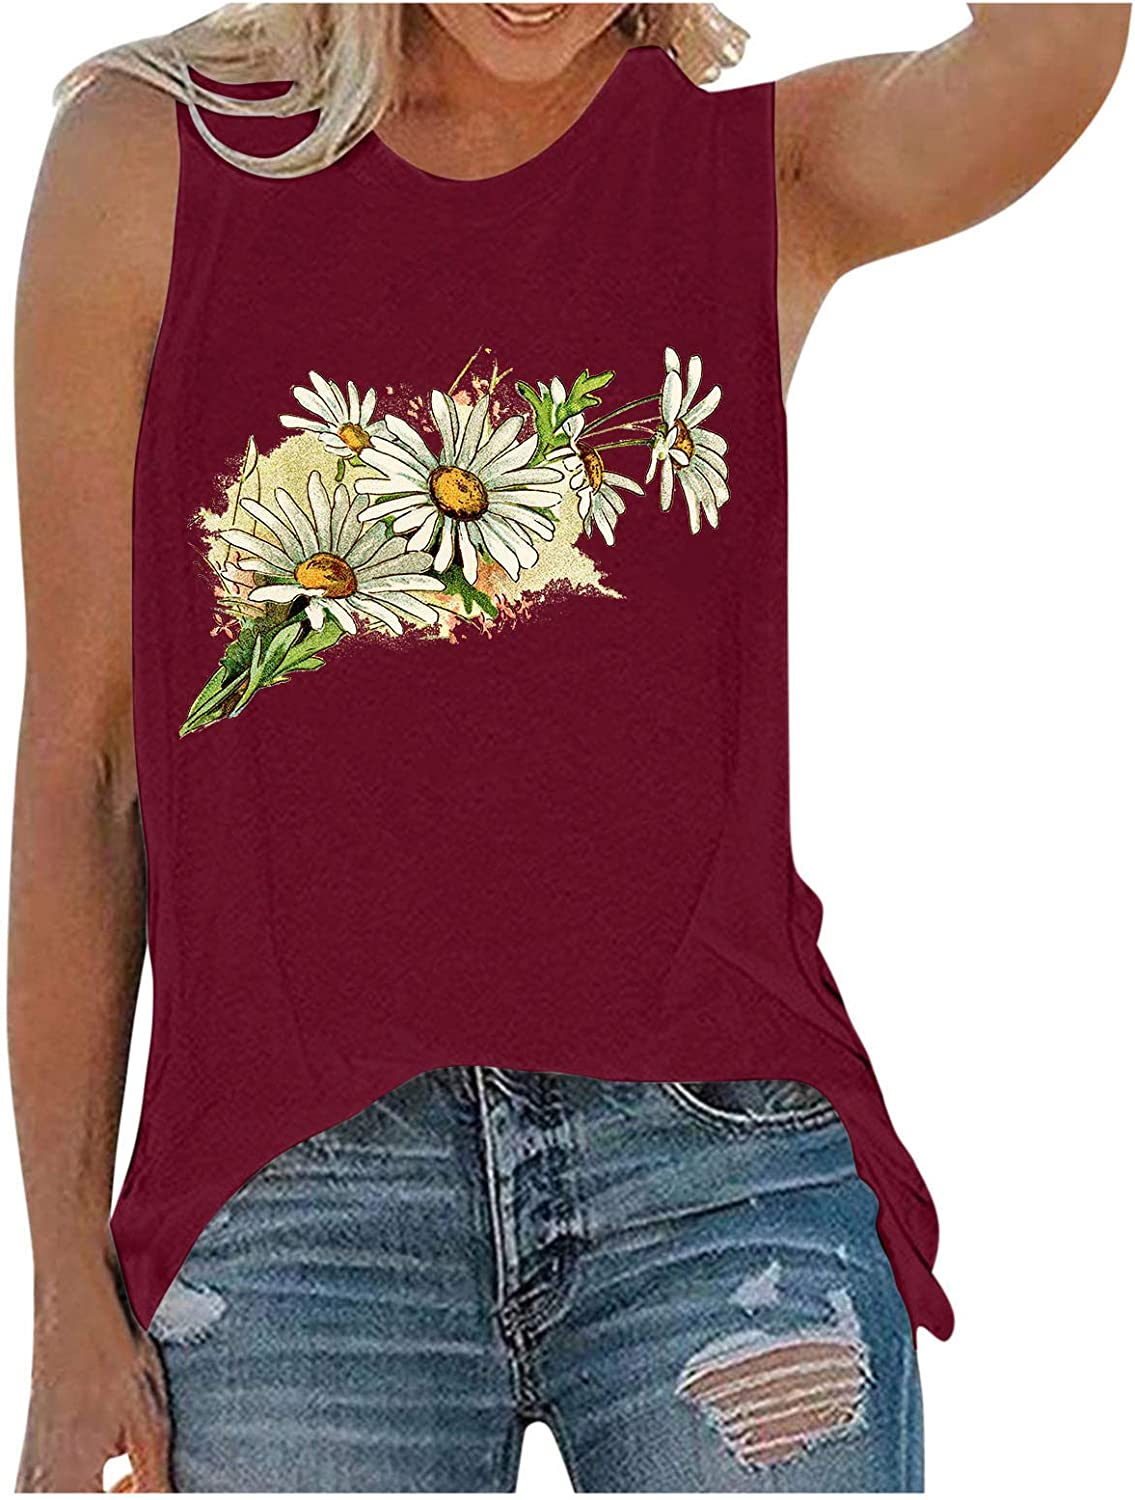 Gerichy Tank Tops for Women, Womens Summer Casual Sleeveless Loose Fit Plus Size Tank Shirts Blouses Tunics Tees Vest